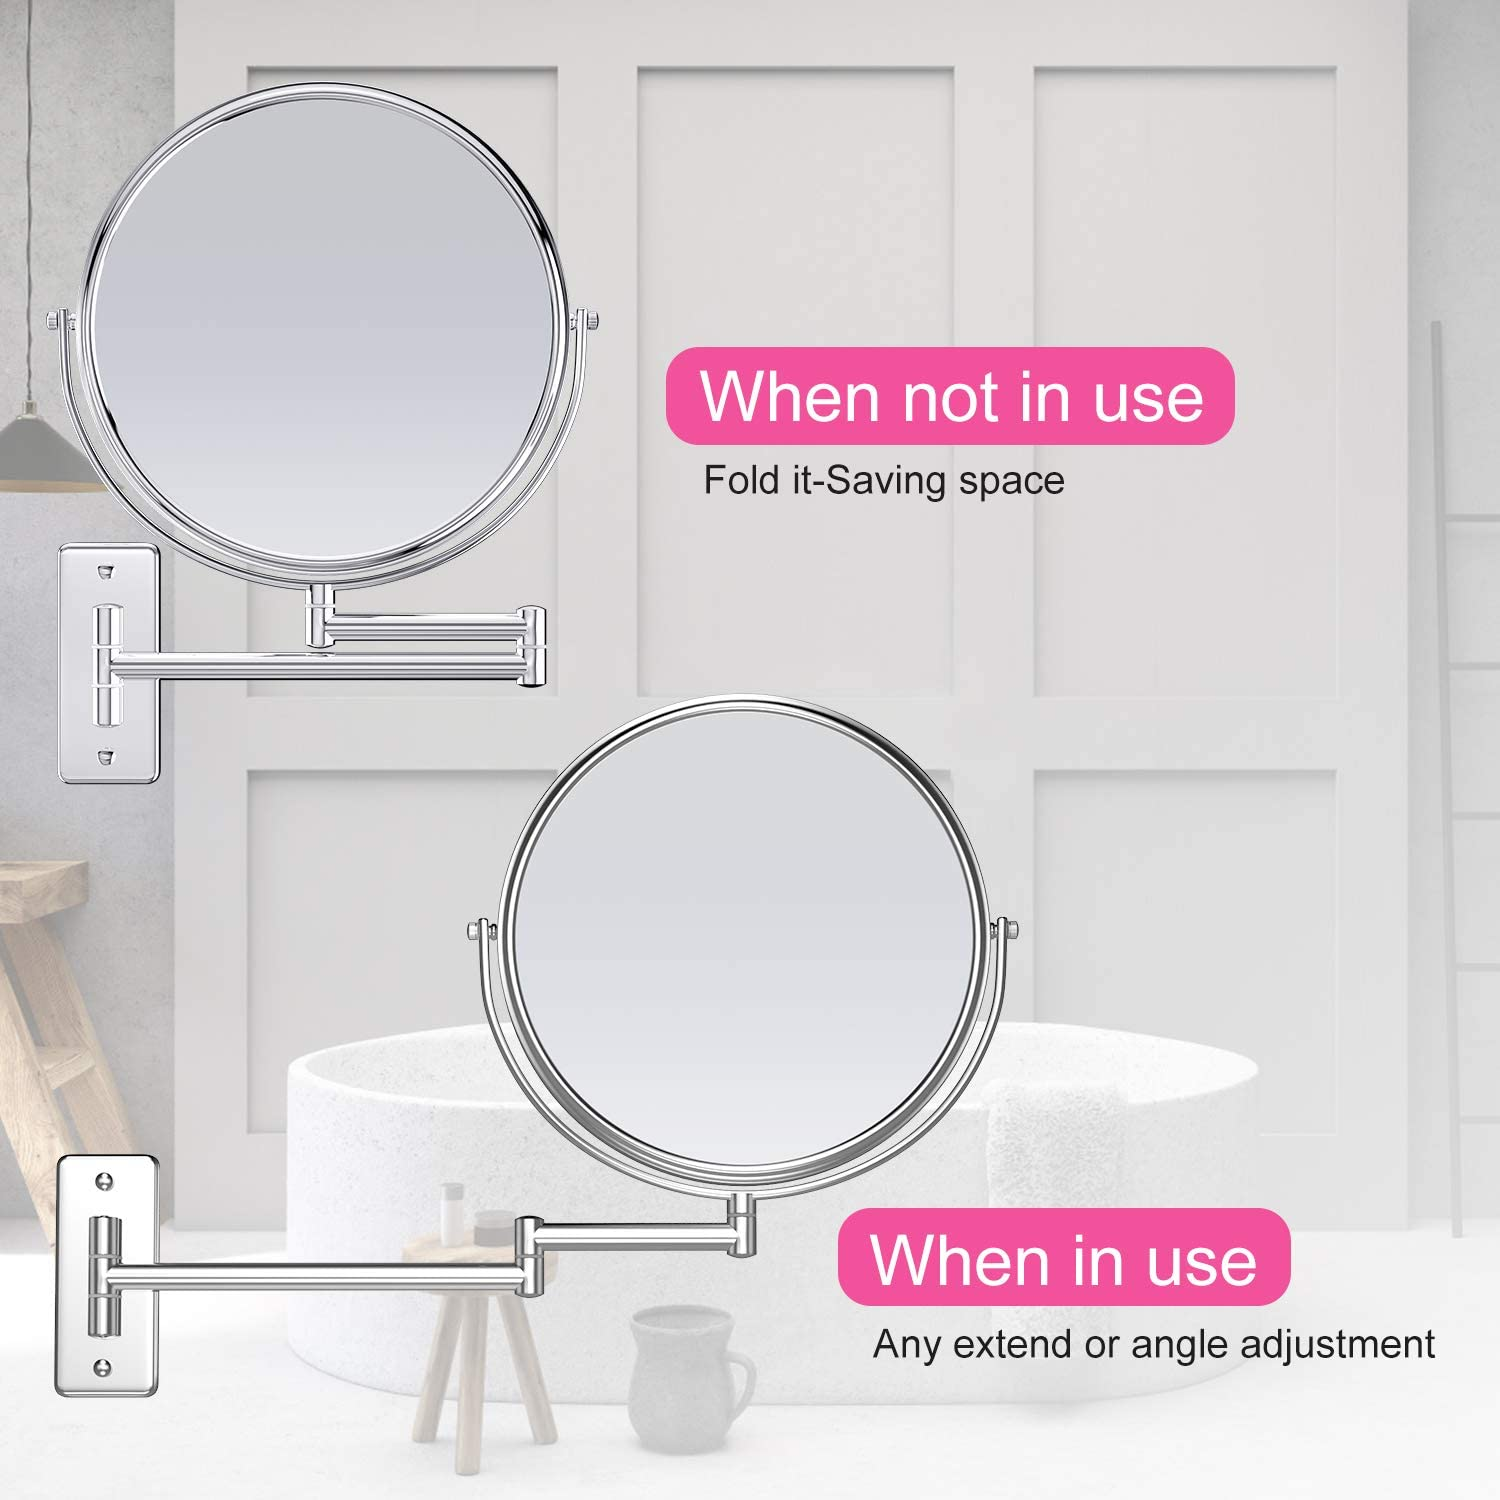 Gospire 9 Large Size Wall Mount Makeup Mirror with 5X Magnification Double-Sided Swivel Mirror,Polished Chrome Finished